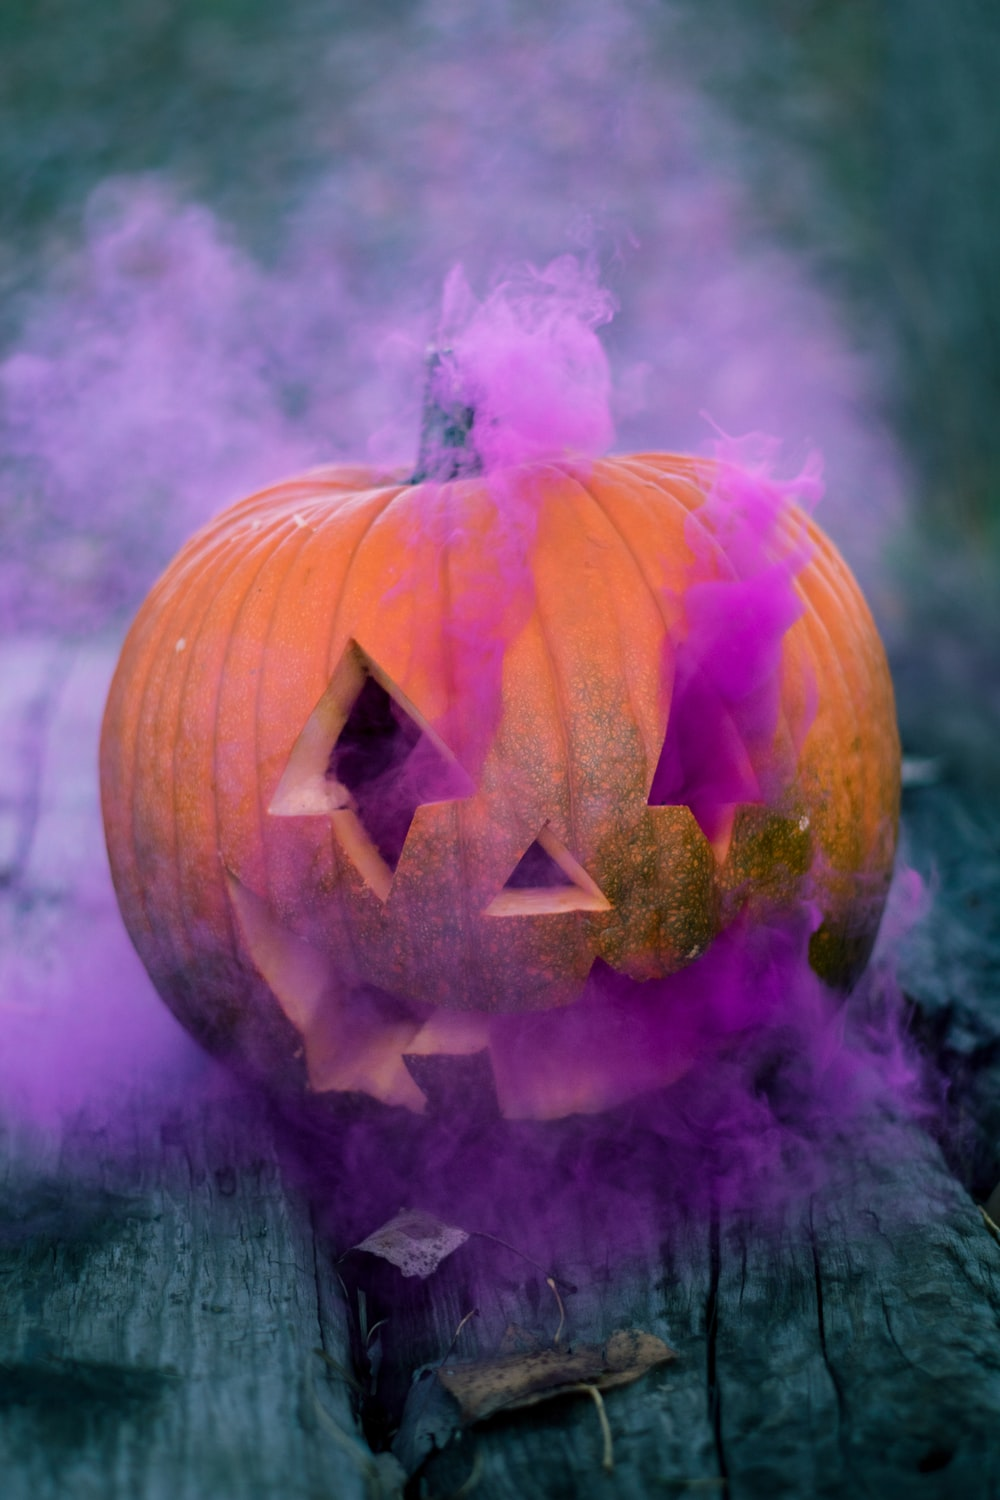 orange Jack-o'-lantern with pink smoke on gray wooden surface